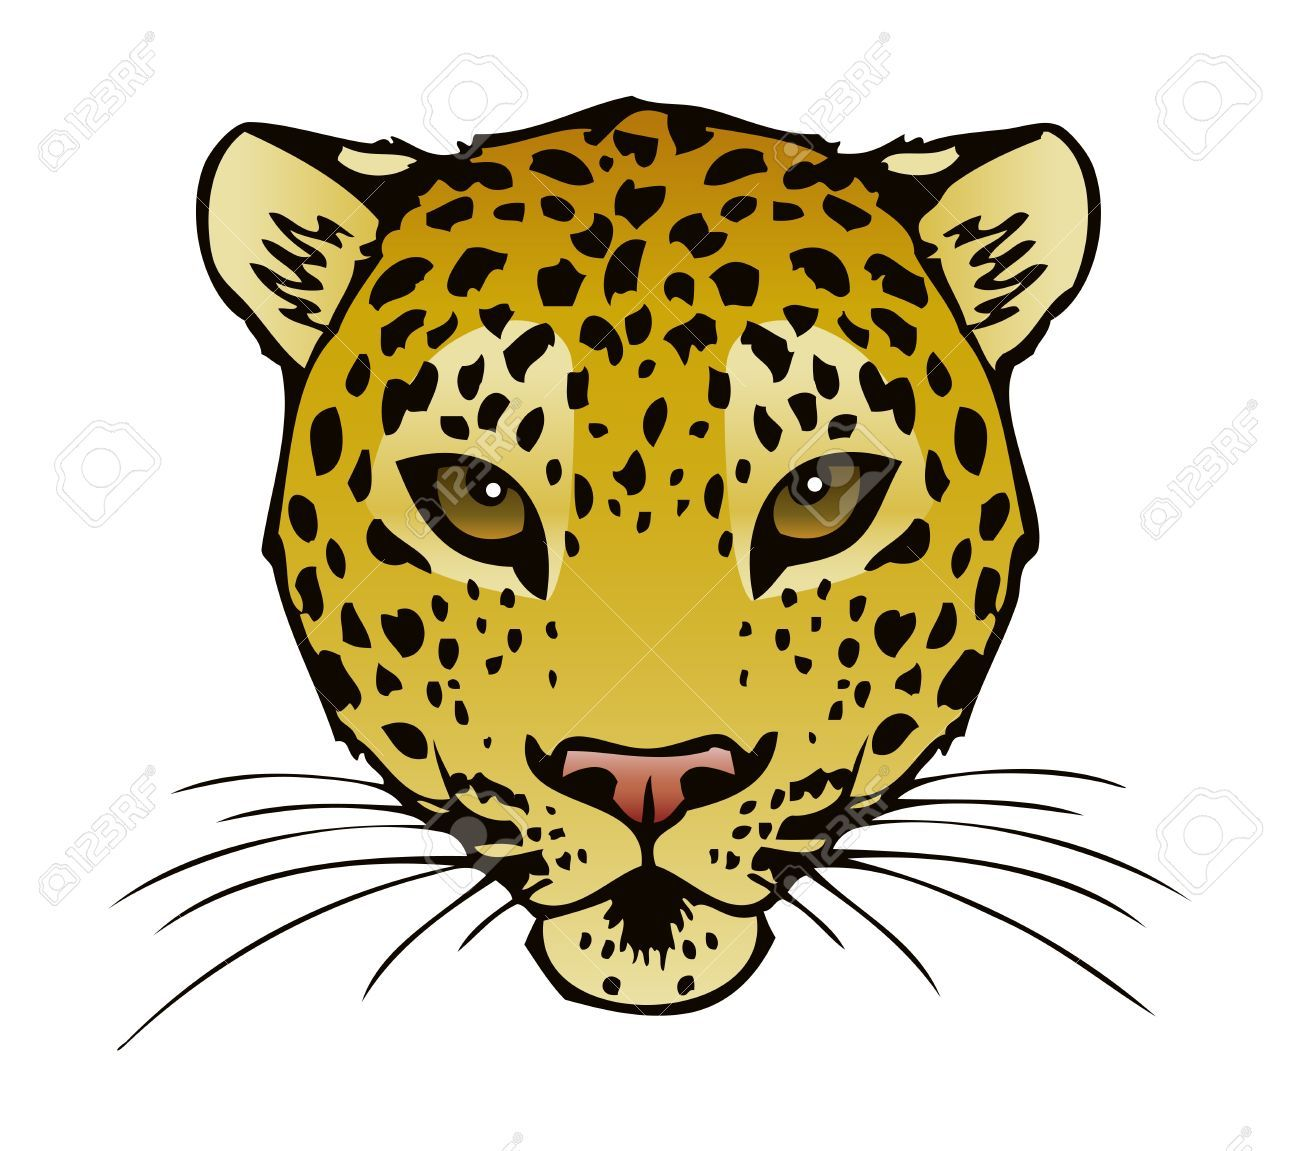 Leopard face clipart image royalty free stock Leopard face clipart 1 » Clipart Portal image royalty free stock